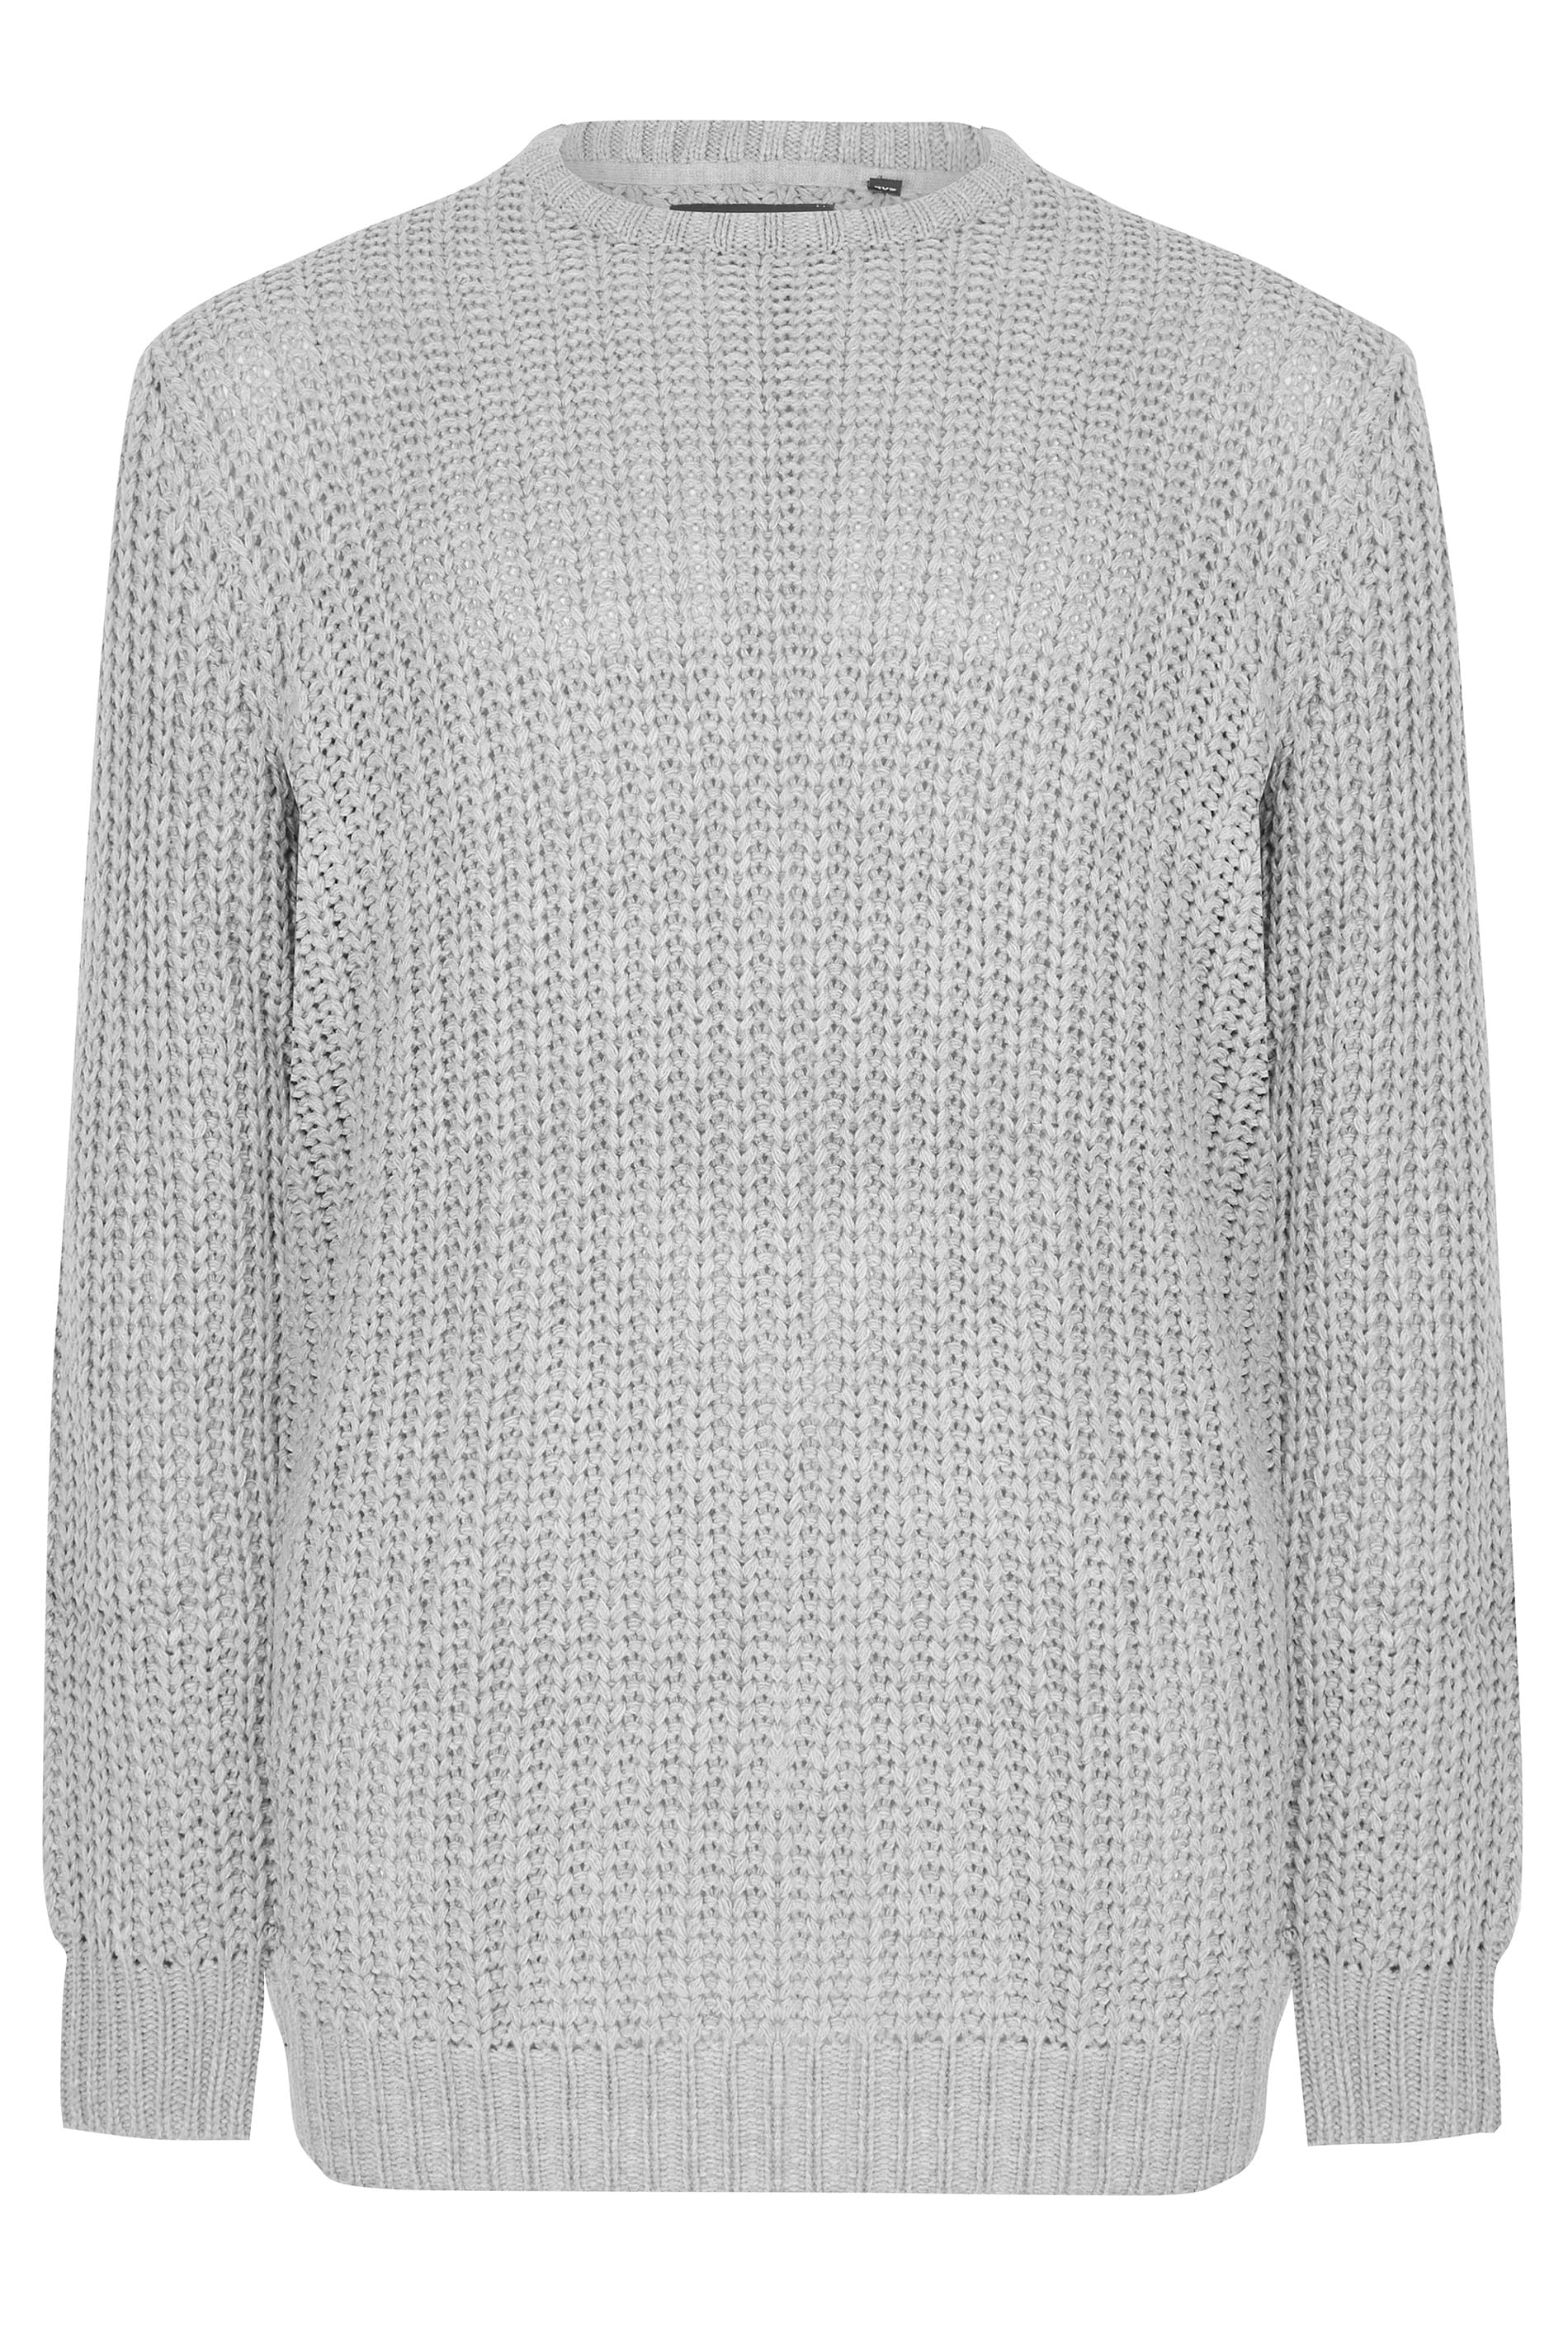 e017cf4f7 LOYALTY   FAITH Grey Chunky Knit Jumper